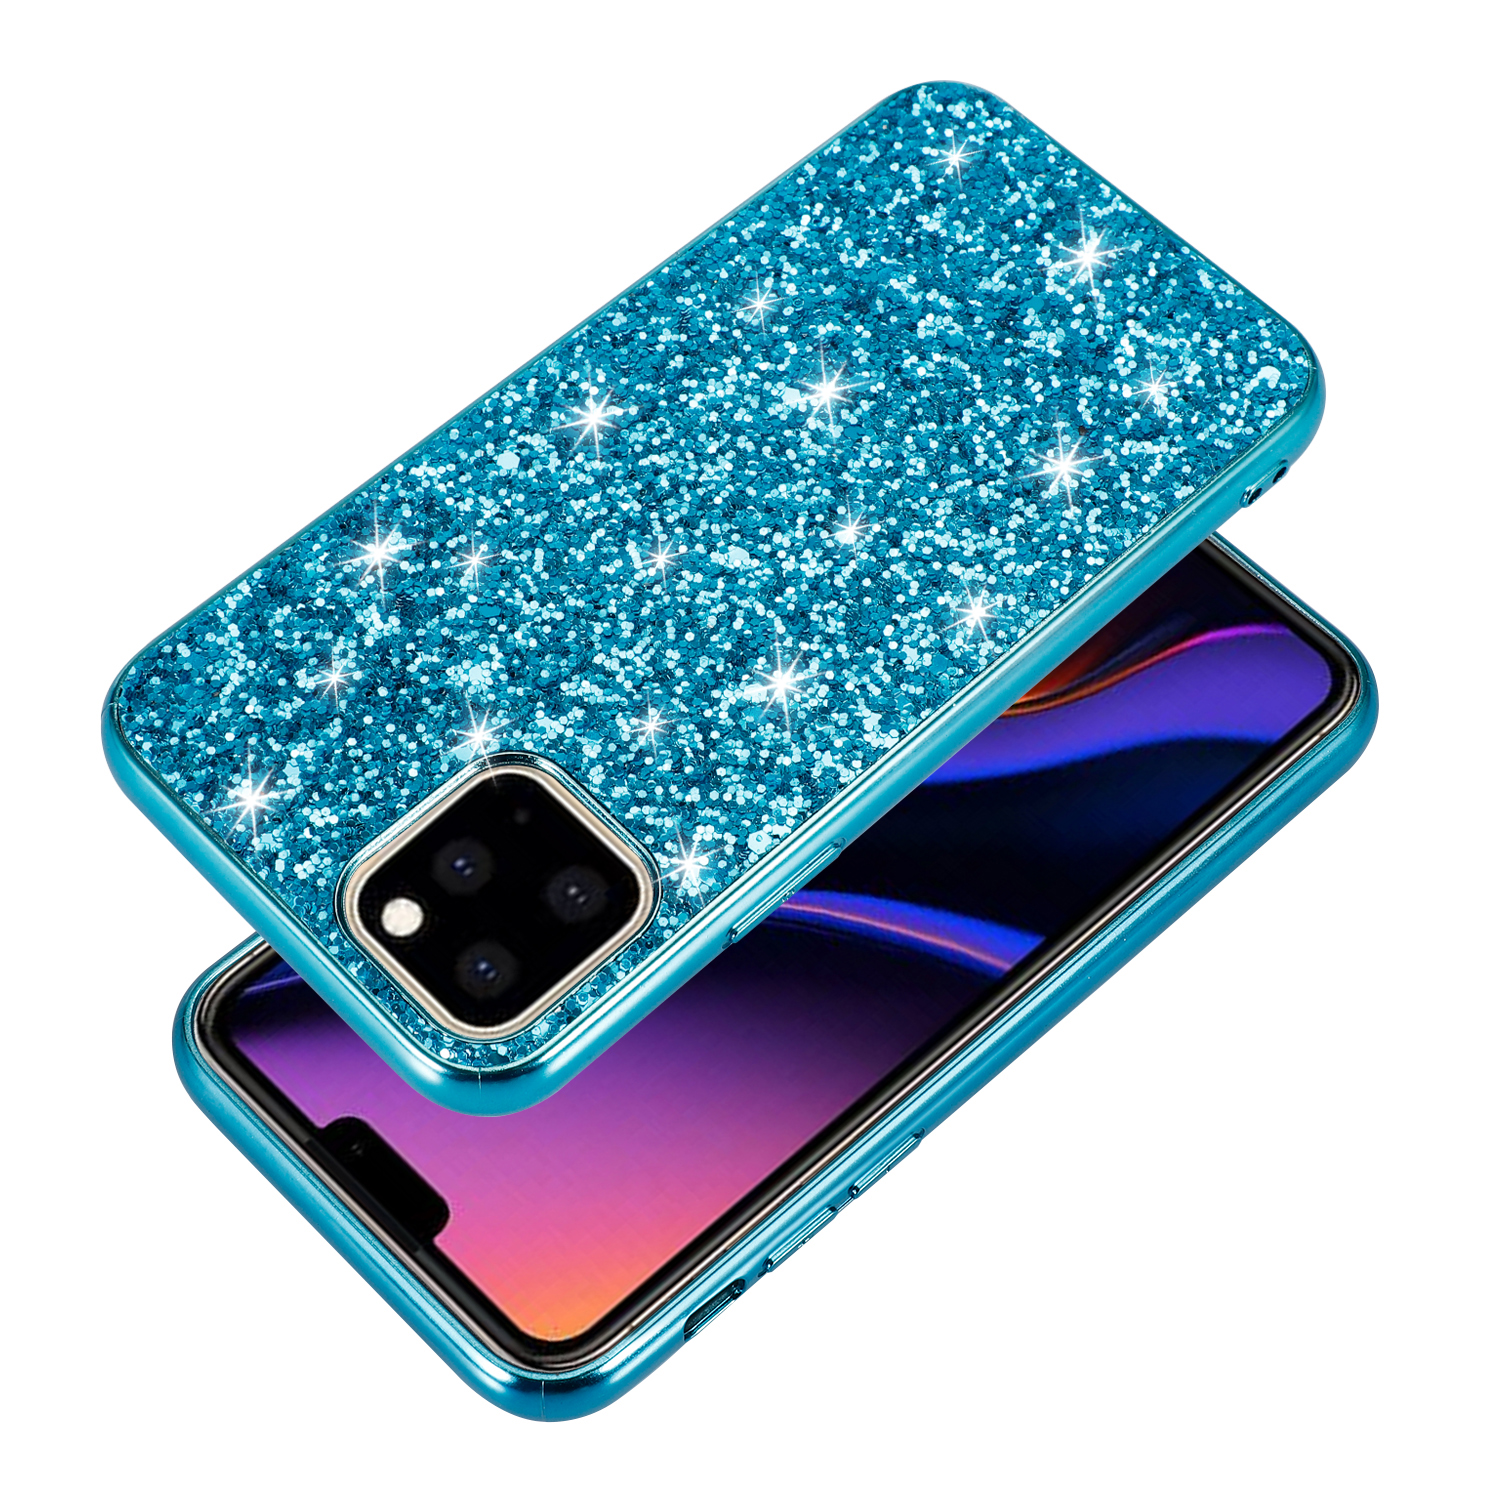 Shiny Glitter Girls Case for iPhone 11/11 Pro/11 Pro Max 24